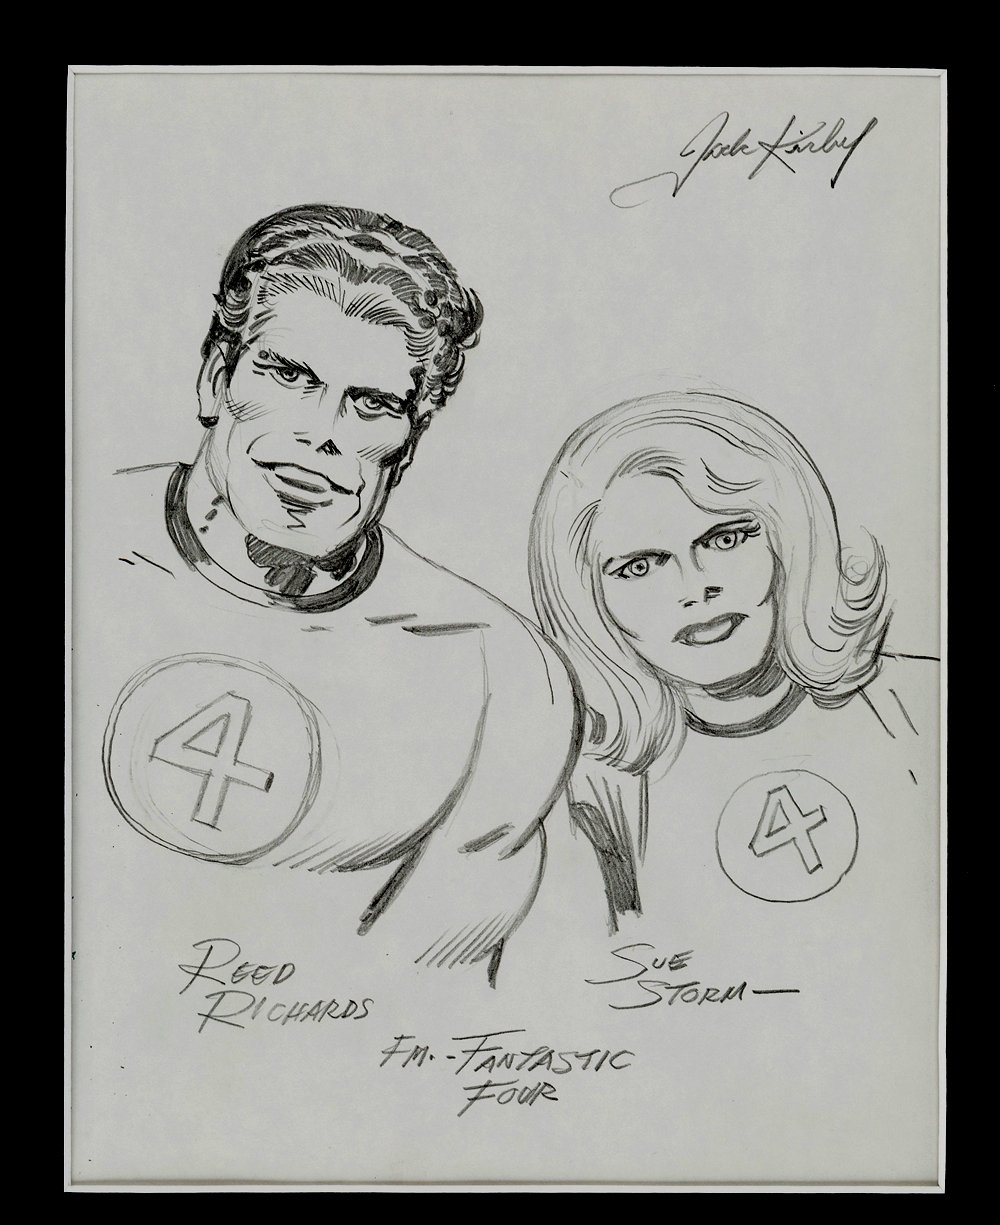 Mr Fantastic & Invisible Girl Pinup Published In Famed 'Heroes & Villains' Sketchbook (Early 1970's)